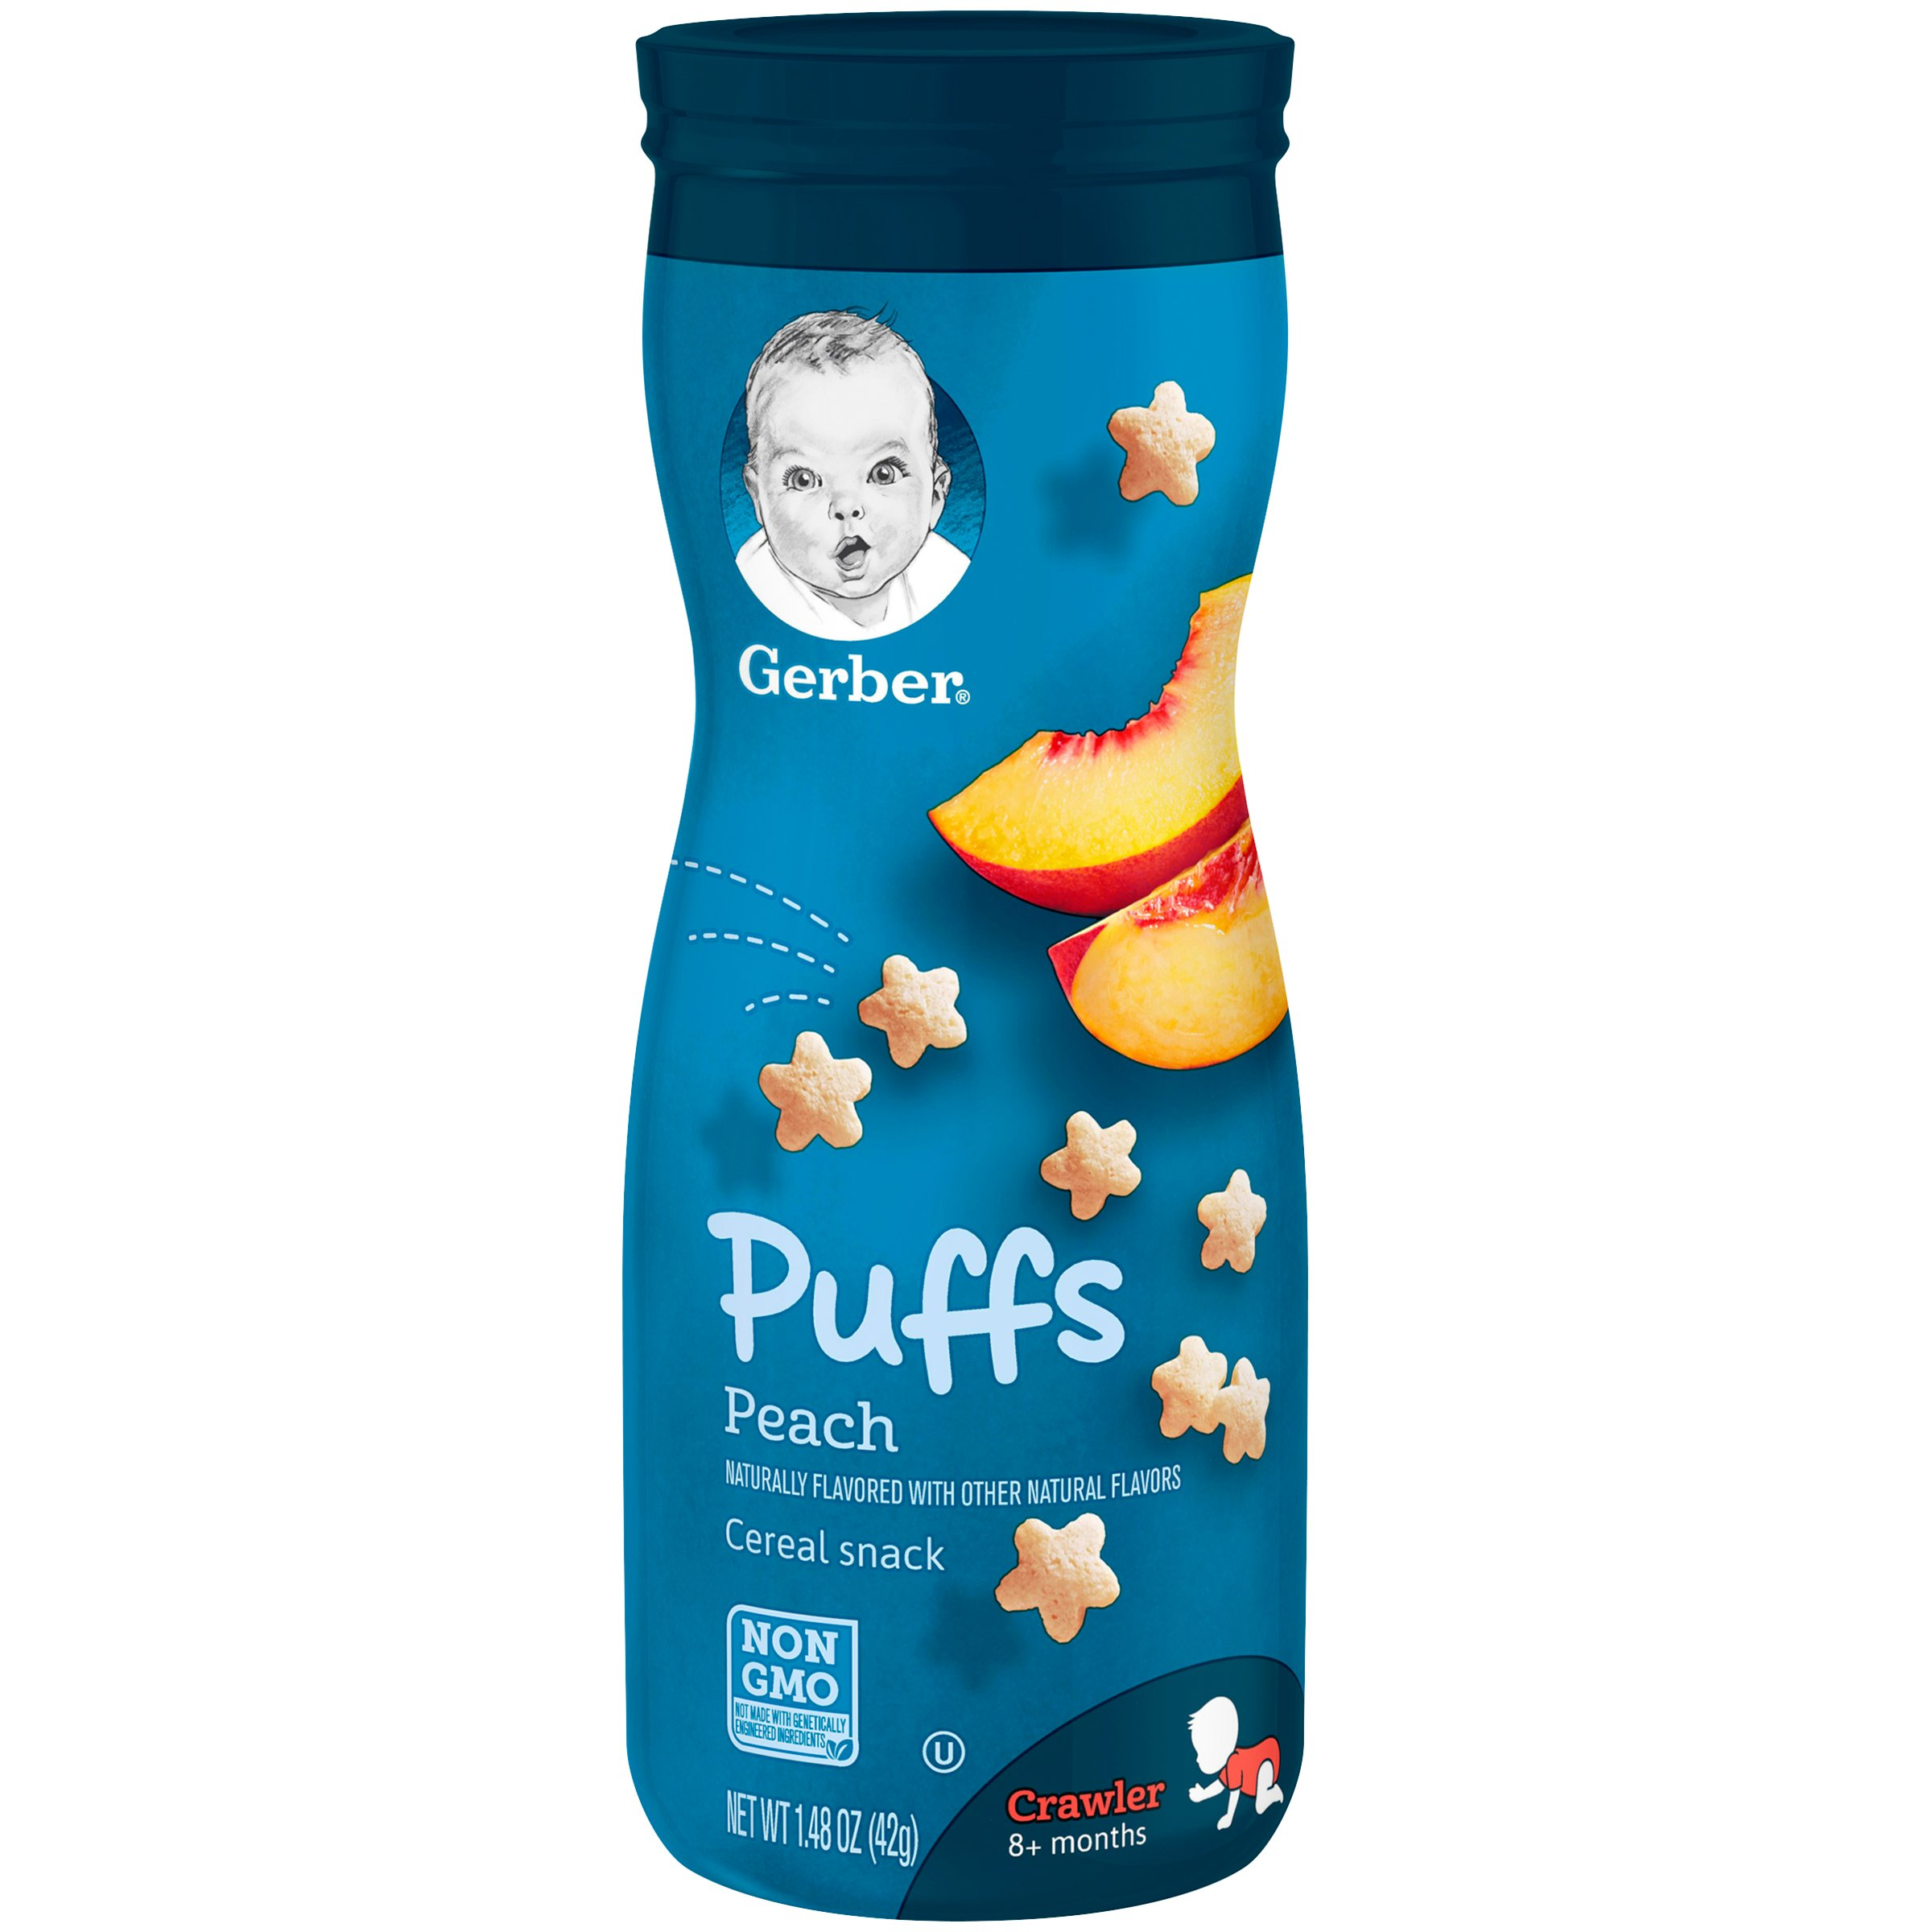 Gerber Puffs Cereal Snack, Peach, 1.48 Ounce, 6 Count